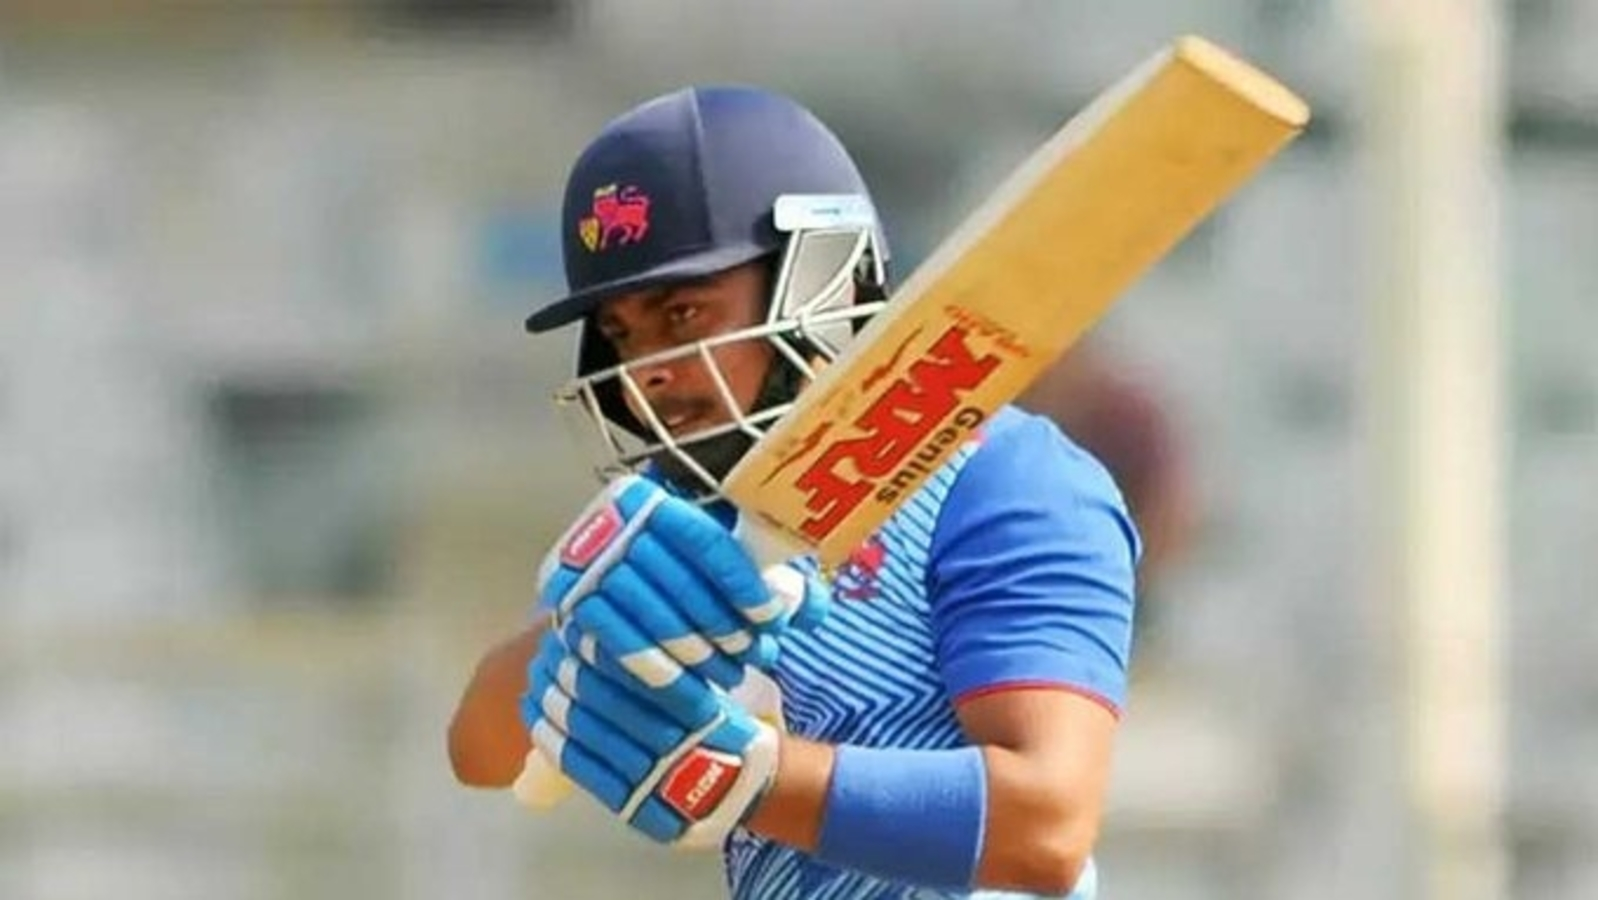 Prithvi Shaw sets scoring record as he battles the demons of 2020 - Hindustan Times